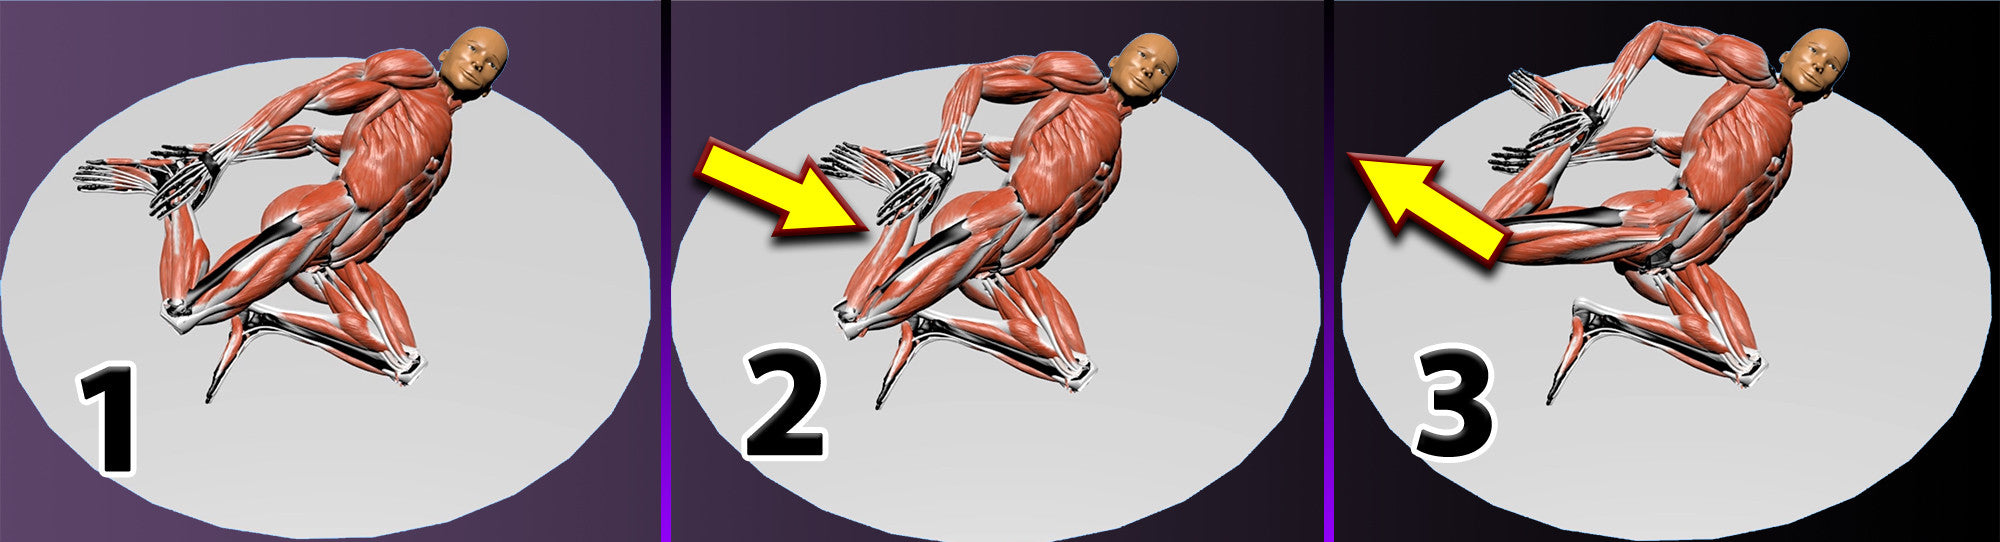 zaichik stretching technique ebook rectus femoris quads